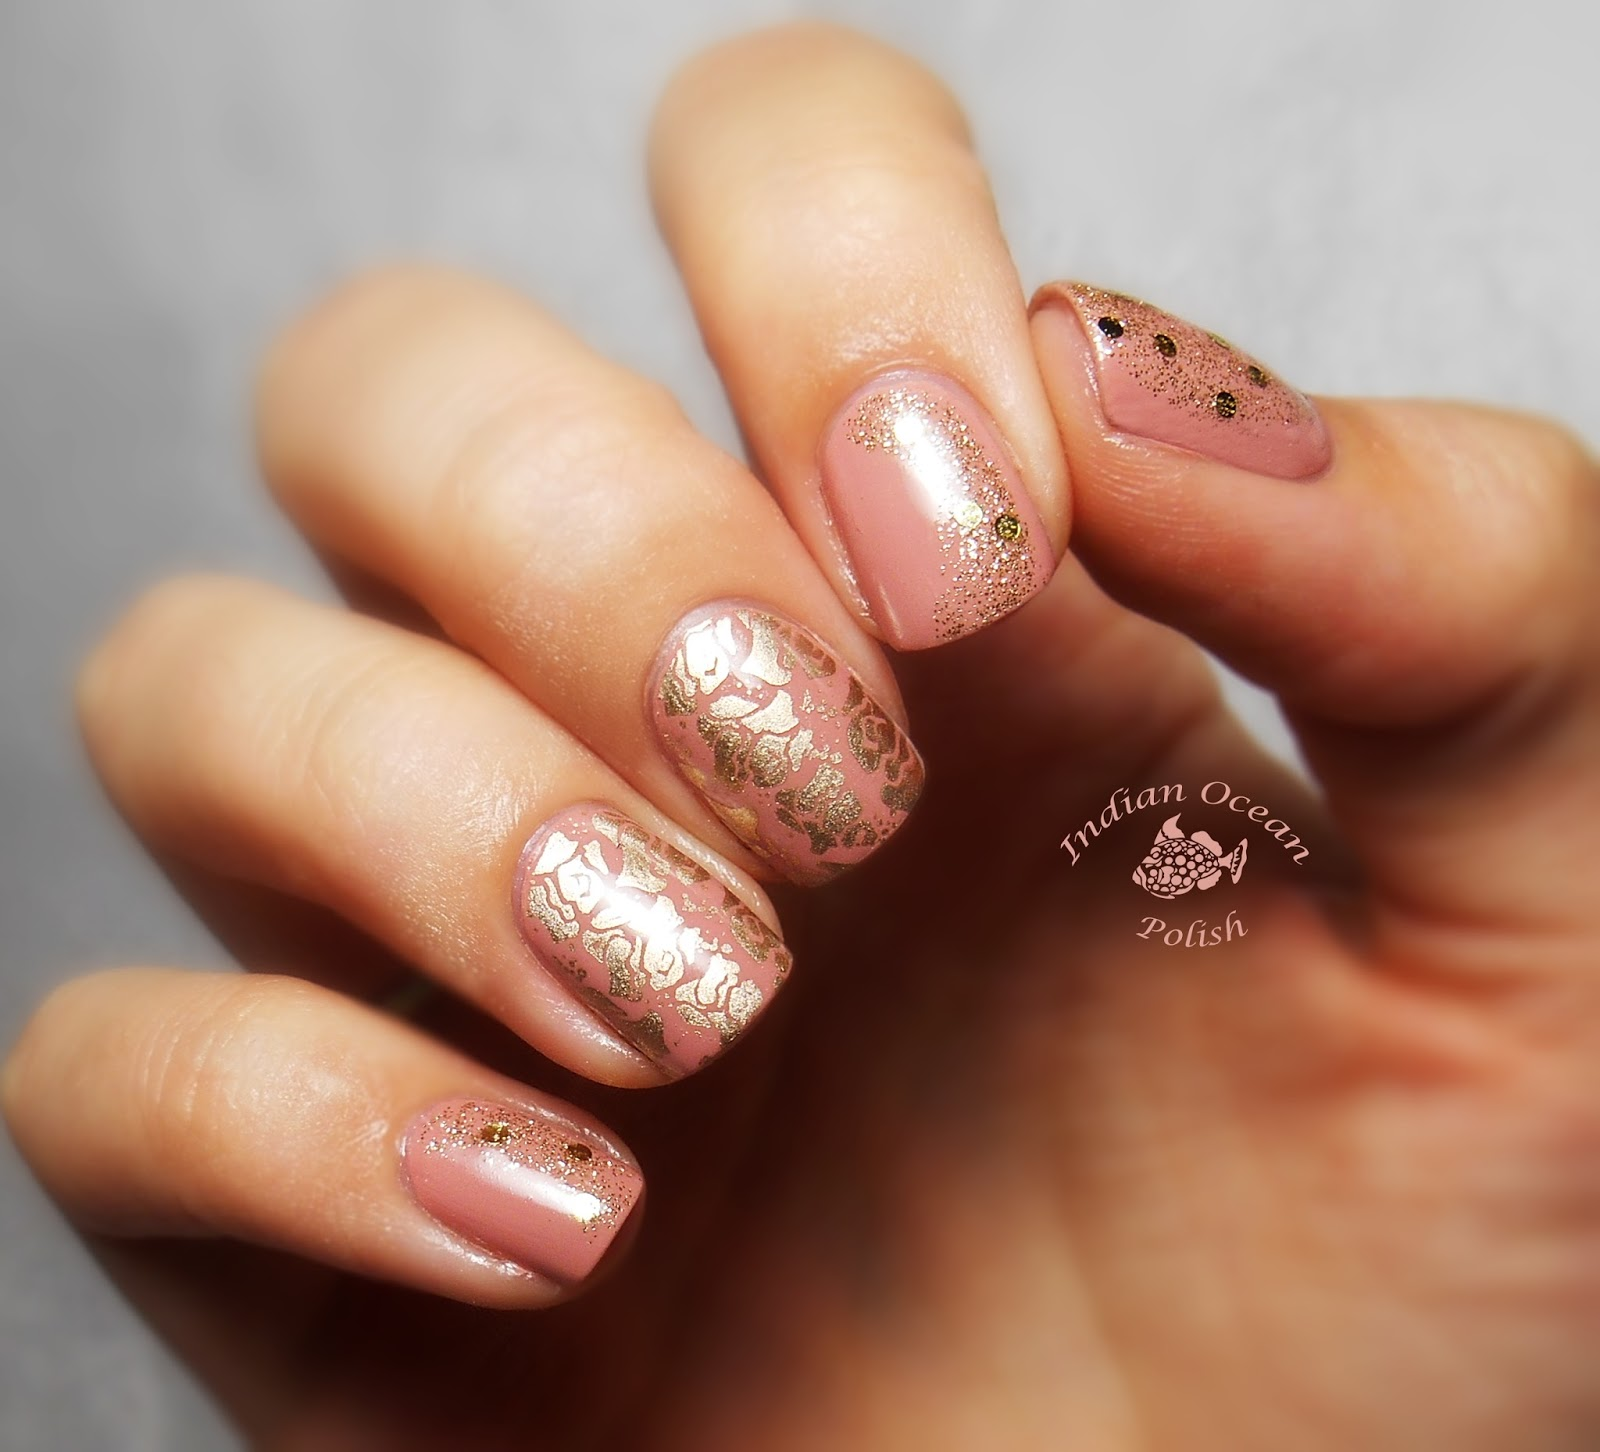 Cute and Cool Nail Art Designs Ideas: Pink, Gold and Rose Nails